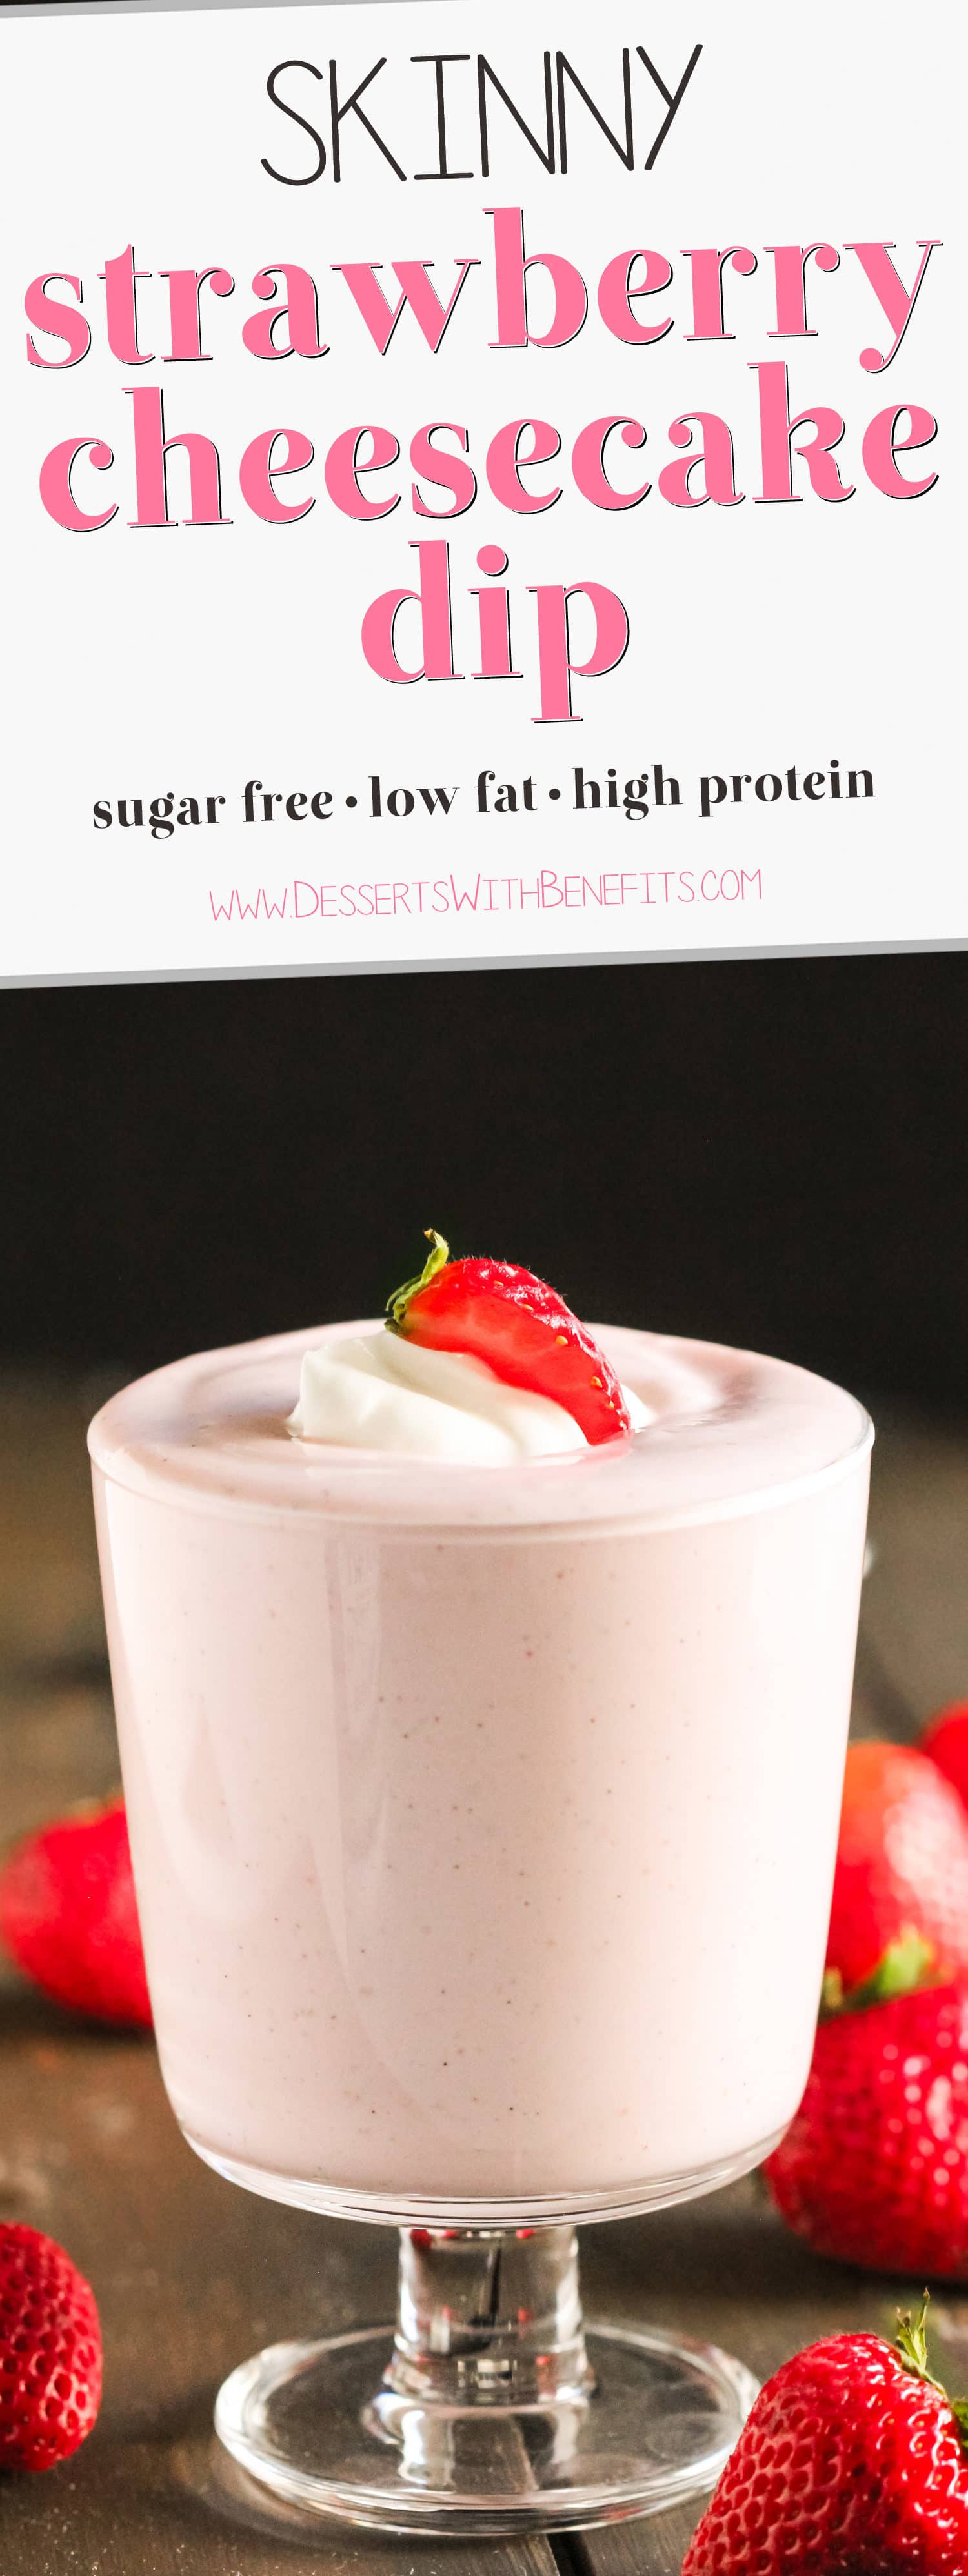 This Healthy Strawberry Cheesecake Dip is super creamy and packed with fresh strawberry puree. It has all the flavor of cheesecake in the form of a dip! It has only 70 calories, 1.5g fat, and NO added sugar! Perfect for dipping graham crackers, strawberries, or spoons alone. Healthy Dessert Recipes with sugar free, low calorie, low fat, low carb, high protein, gluten free, dairy free, vegan, and raw options at the Desserts With Benefits Blog (www.DessertsWithBenefits.com)